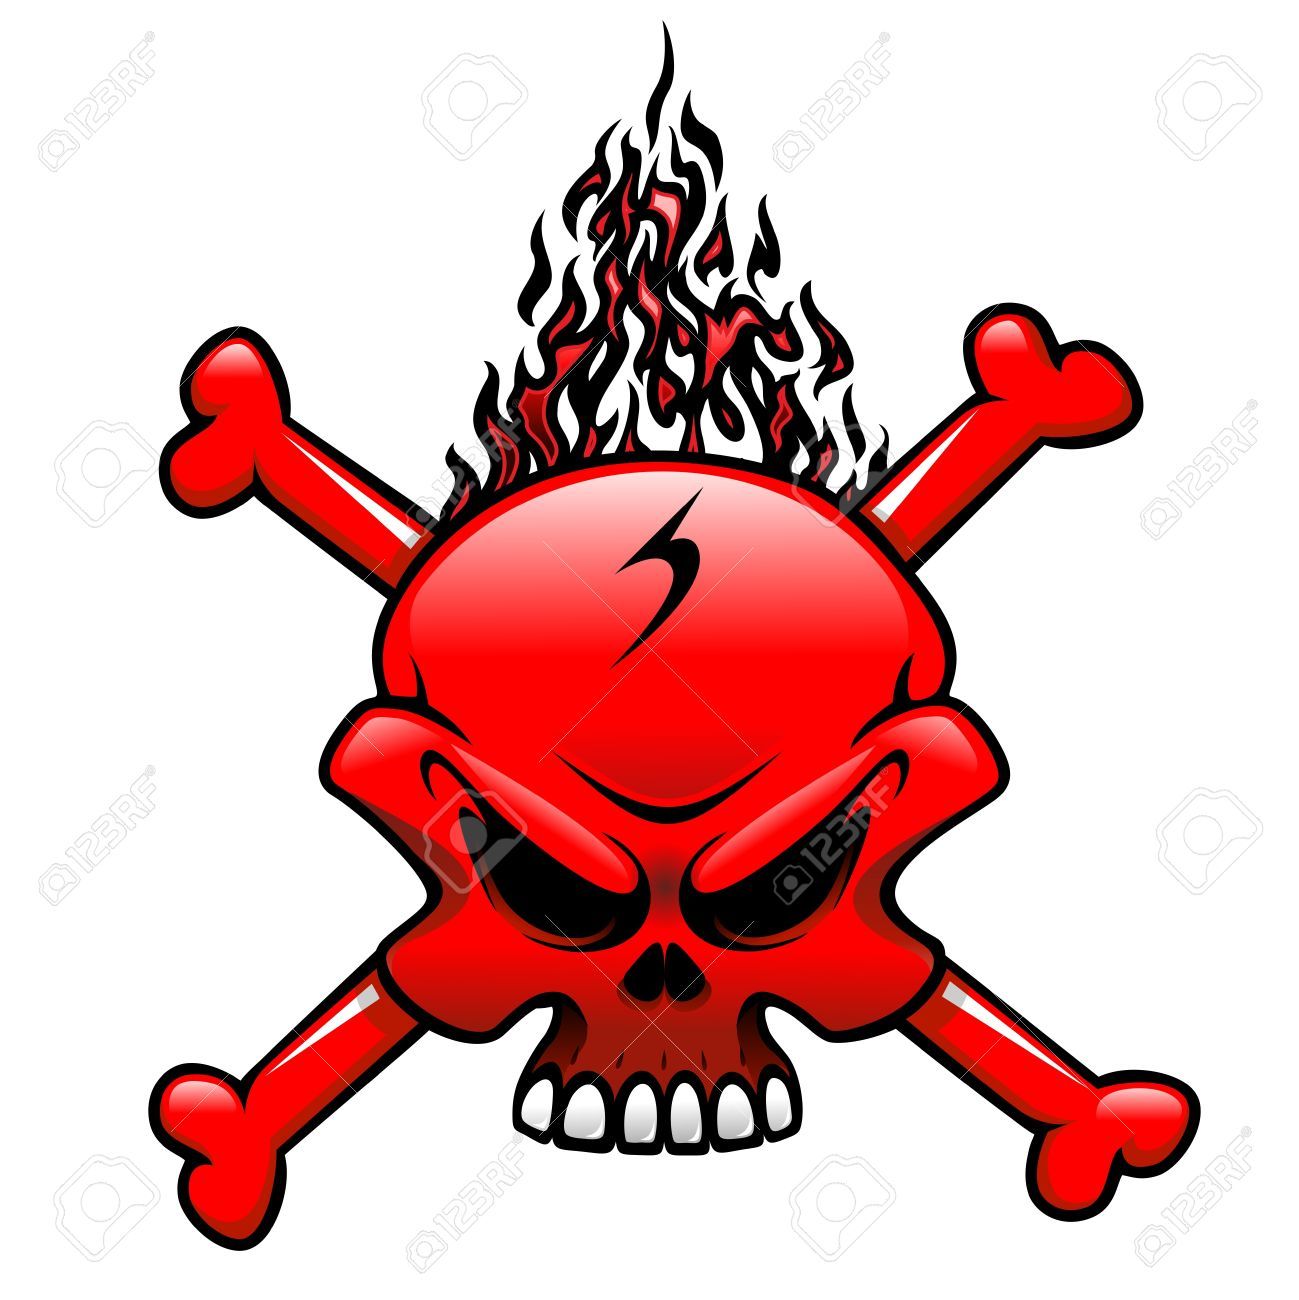 red fire skull clip art tattoo royalty free cliparts vectors and rh 123rf com fire alarm clipart images black and white fire images clip art